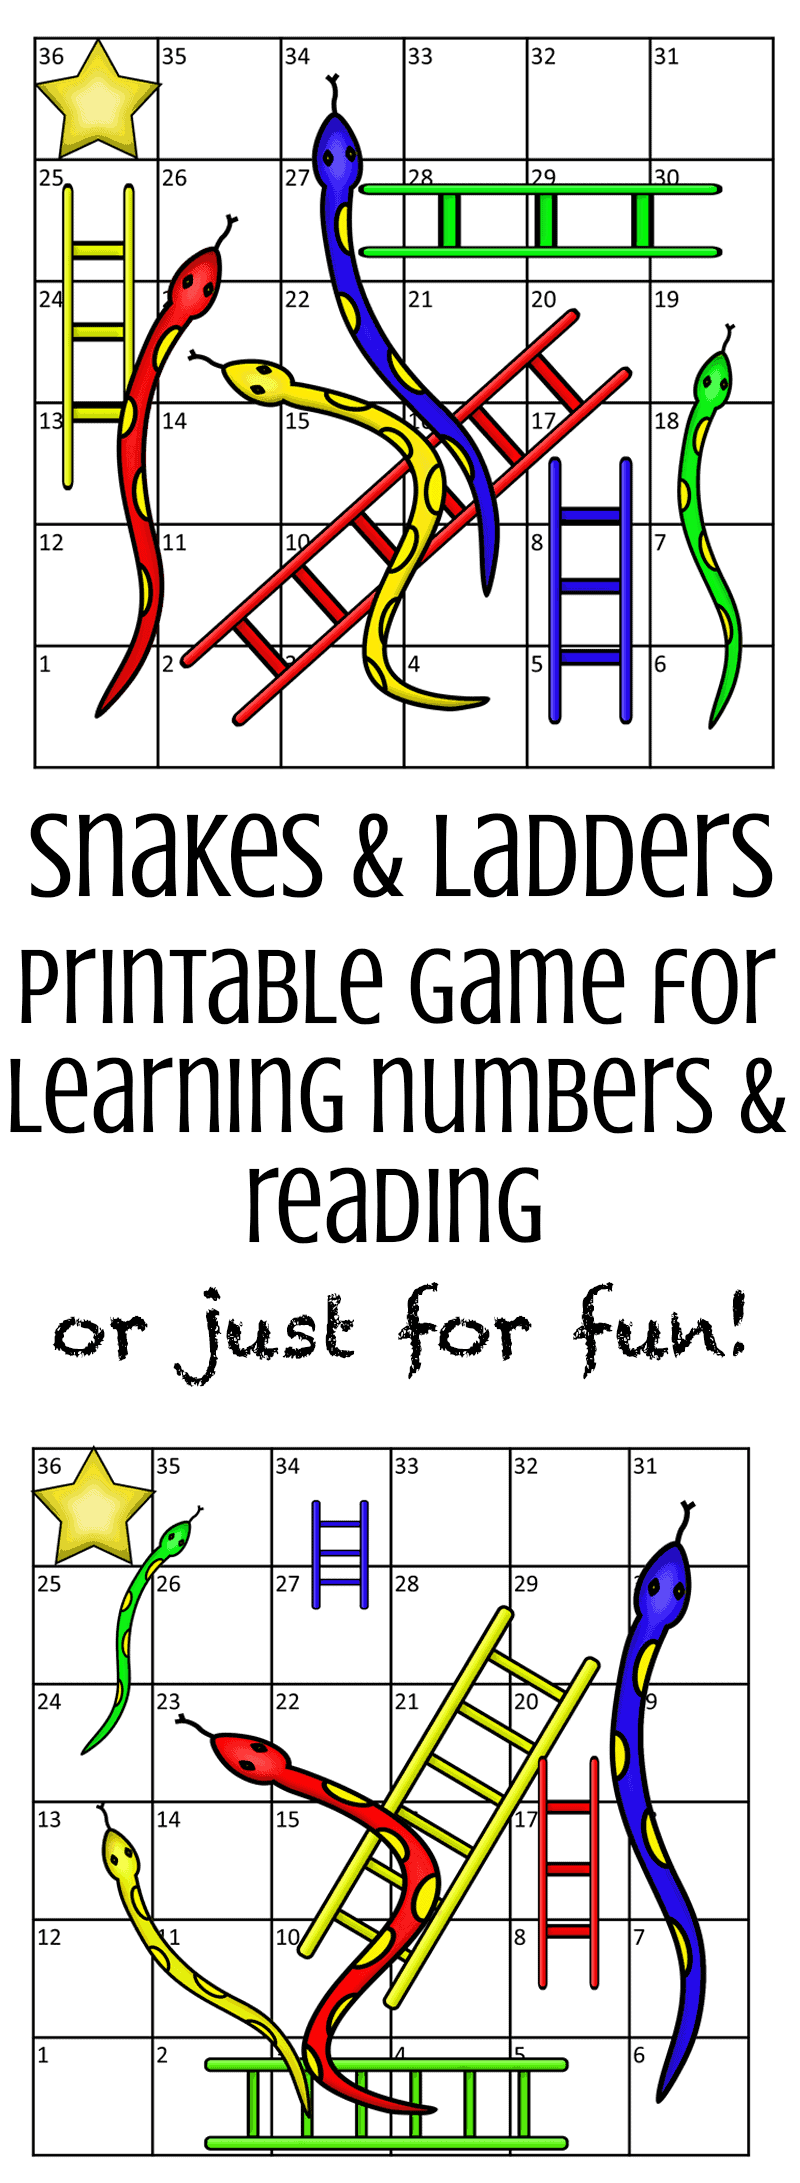 graphic relating to Snakes and Ladders Printable identified as Printable Snakes Ladders Sport